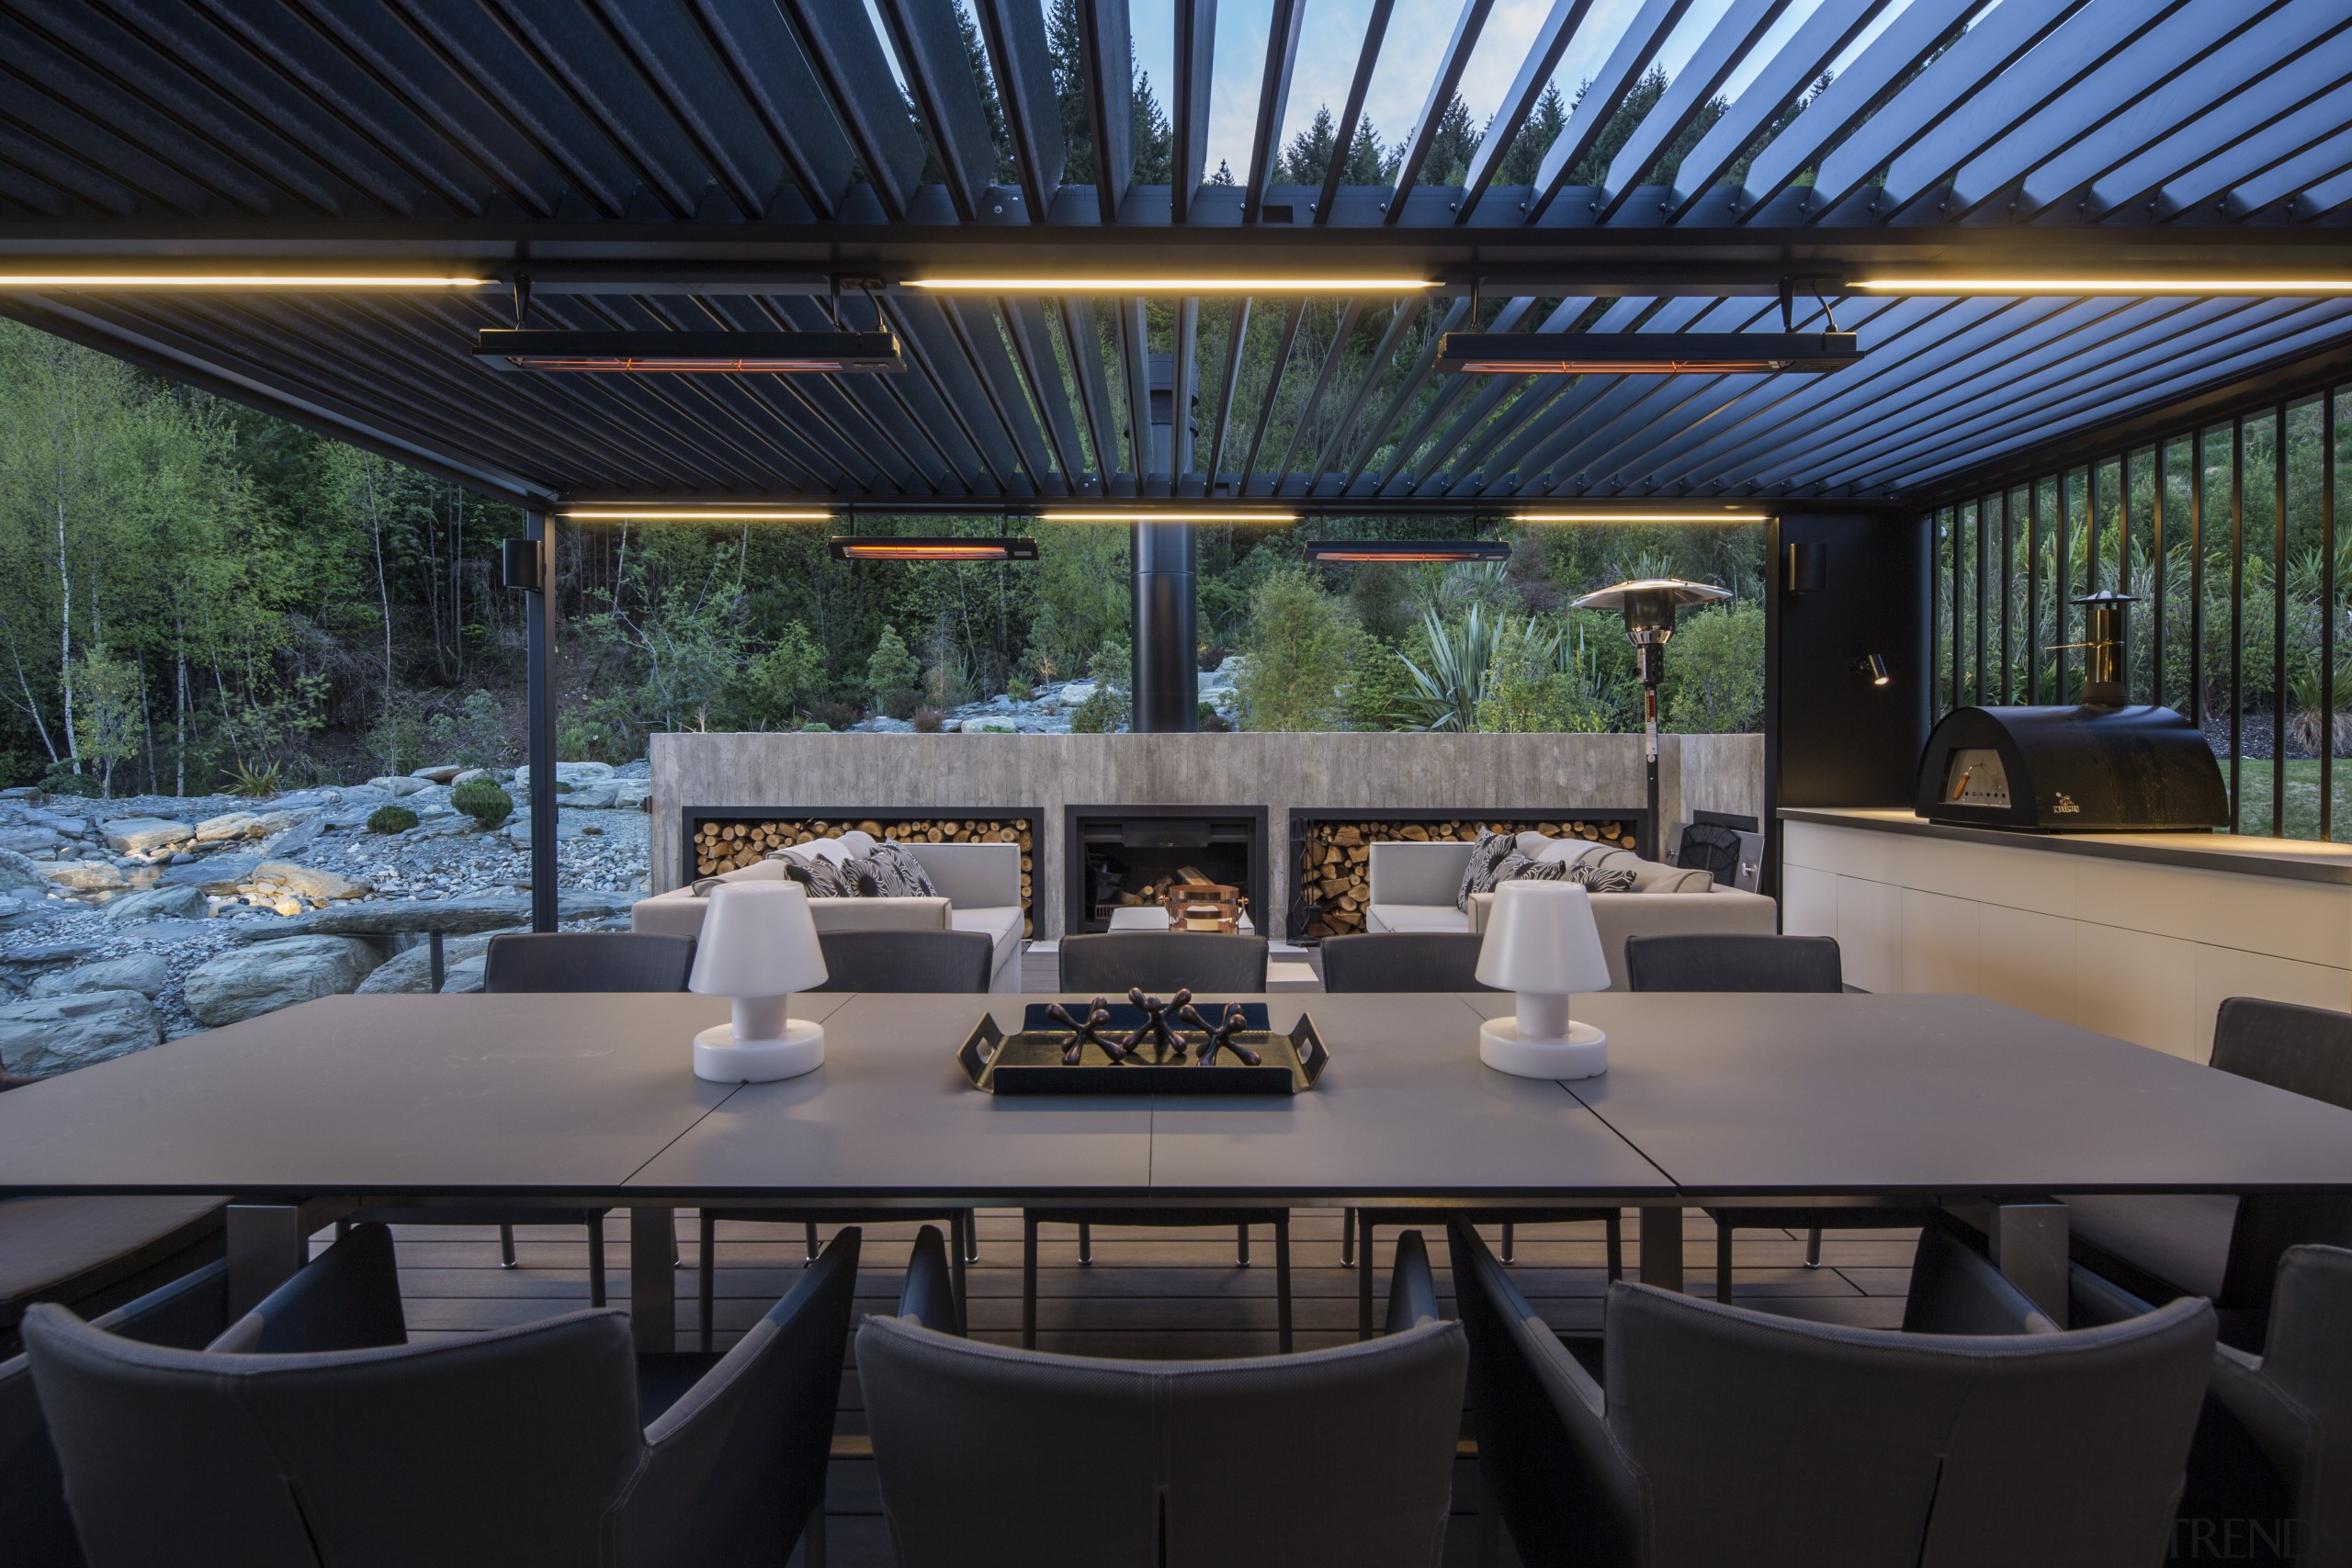 For this mountain home, timber decking in the black